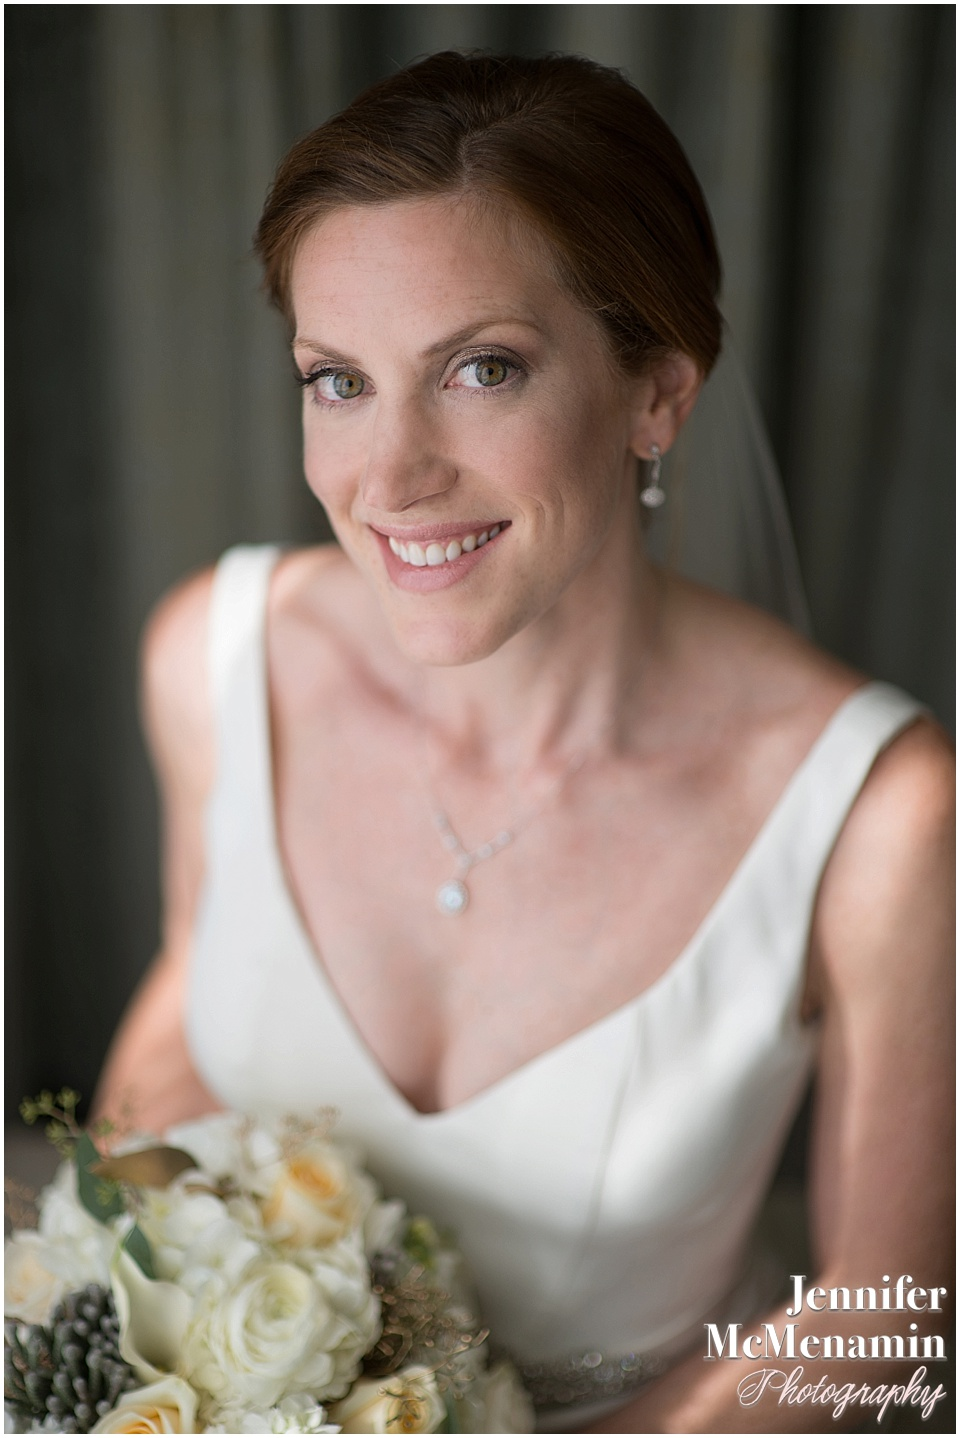 011-Four-Seasons-Baltimore-wedding-Jennifer-McMenamin-Photography